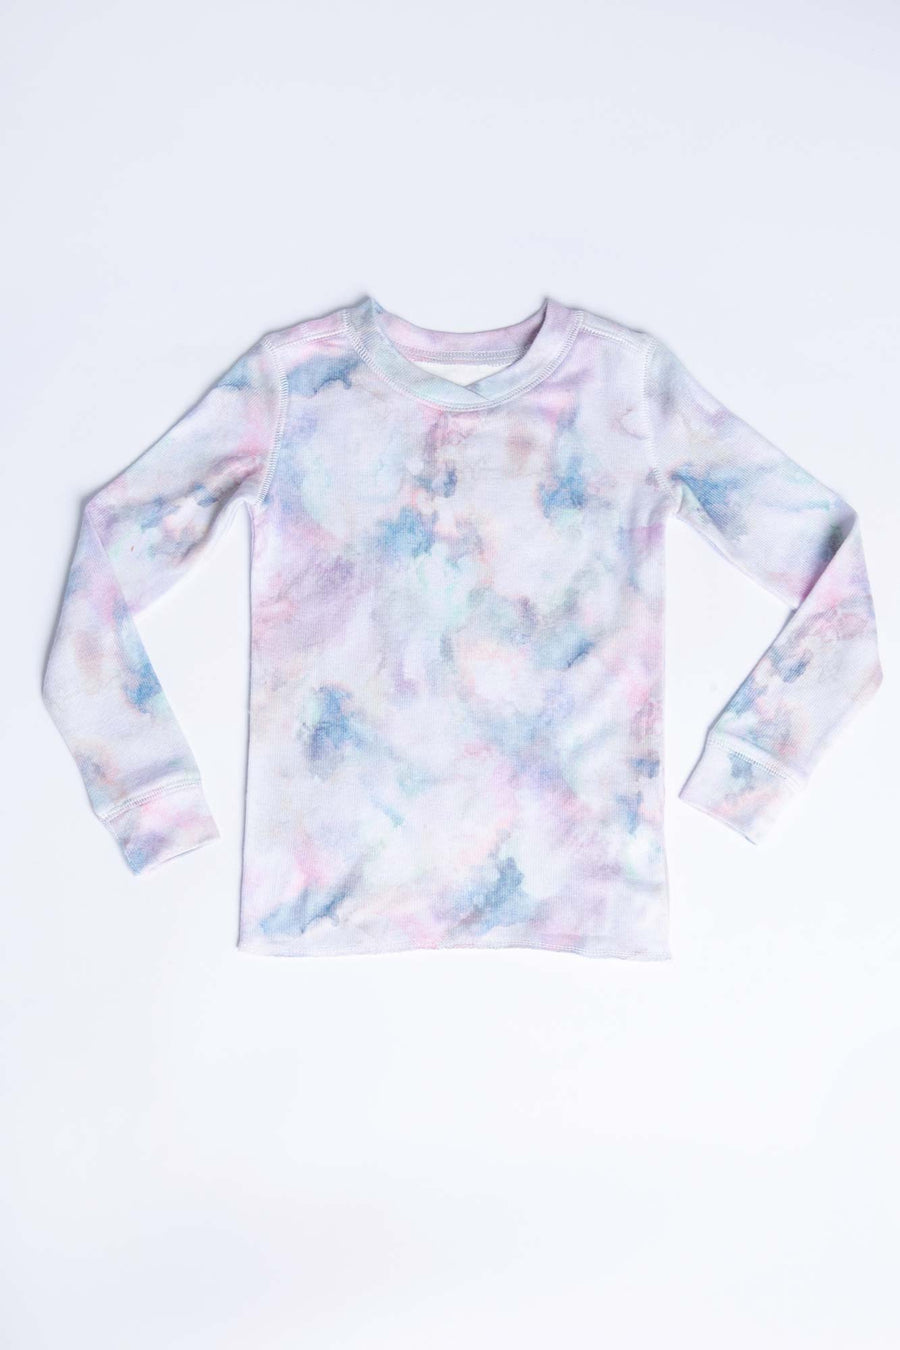 PEACHY MARBLE TIE DYE SET - KIDS & YOUTH